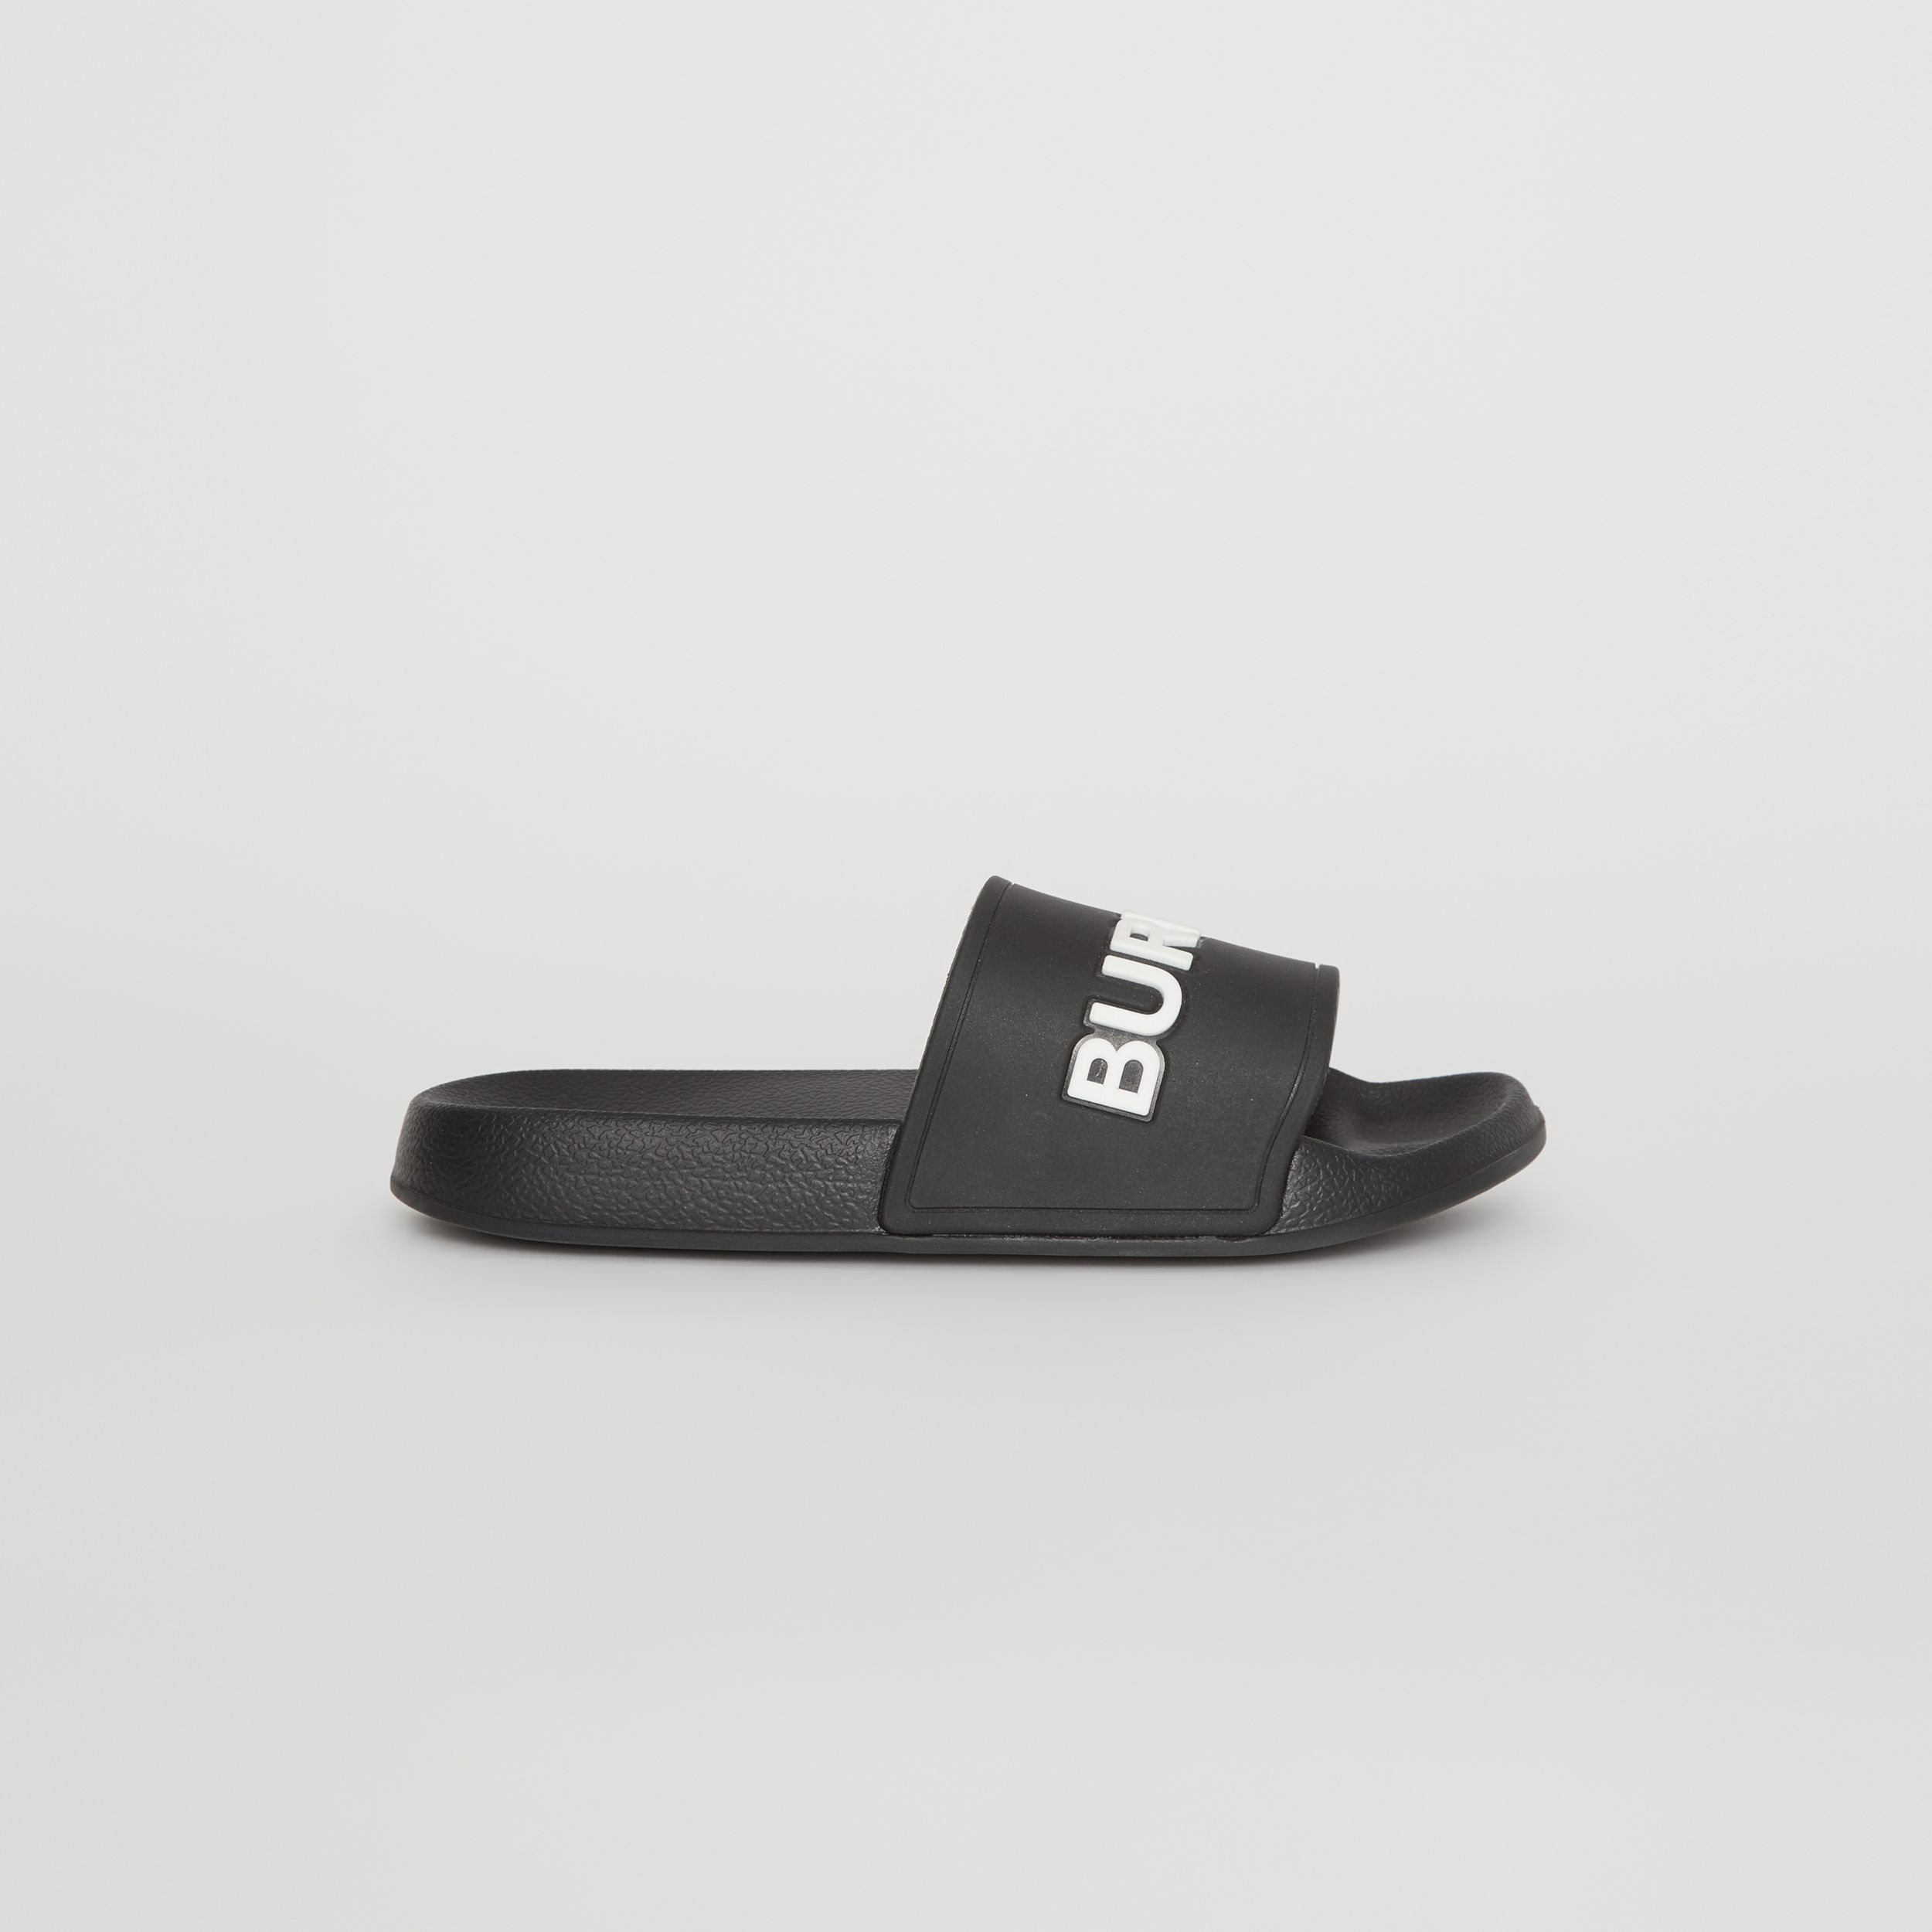 Kingdom Motif Slides in Black/optic White | Burberry - 4